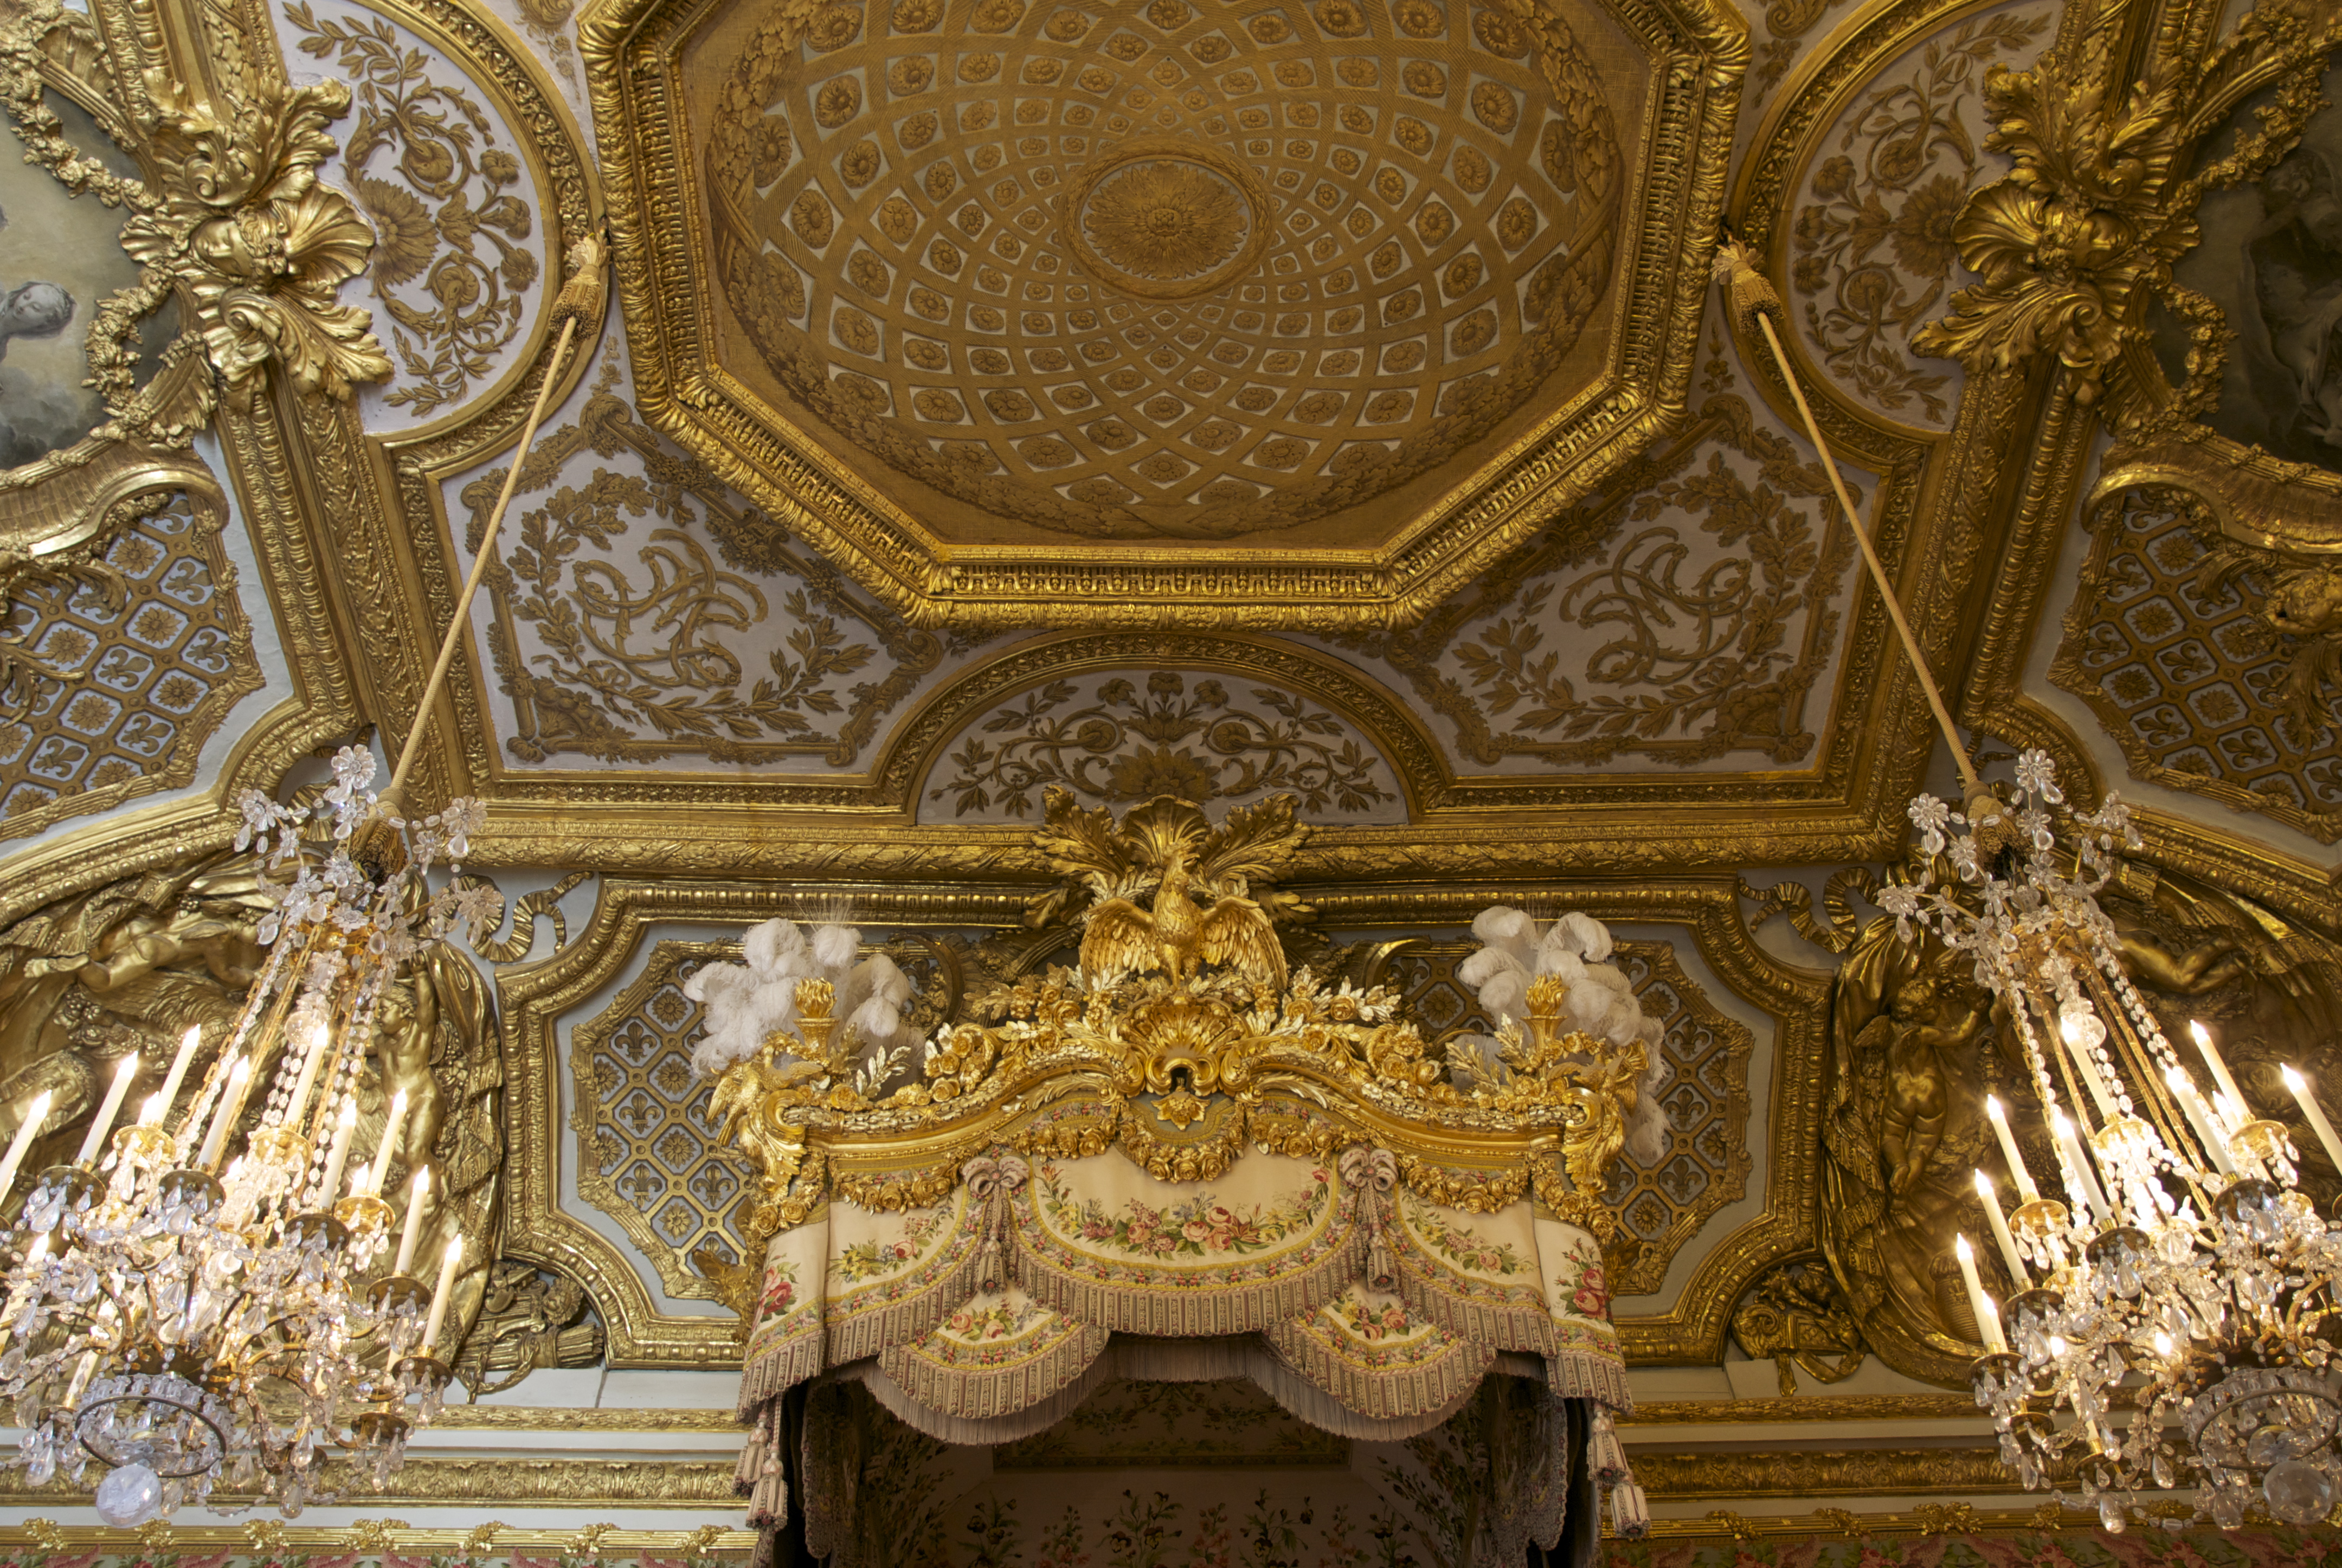 Fragment of the ceiling, the chandeliers and t...